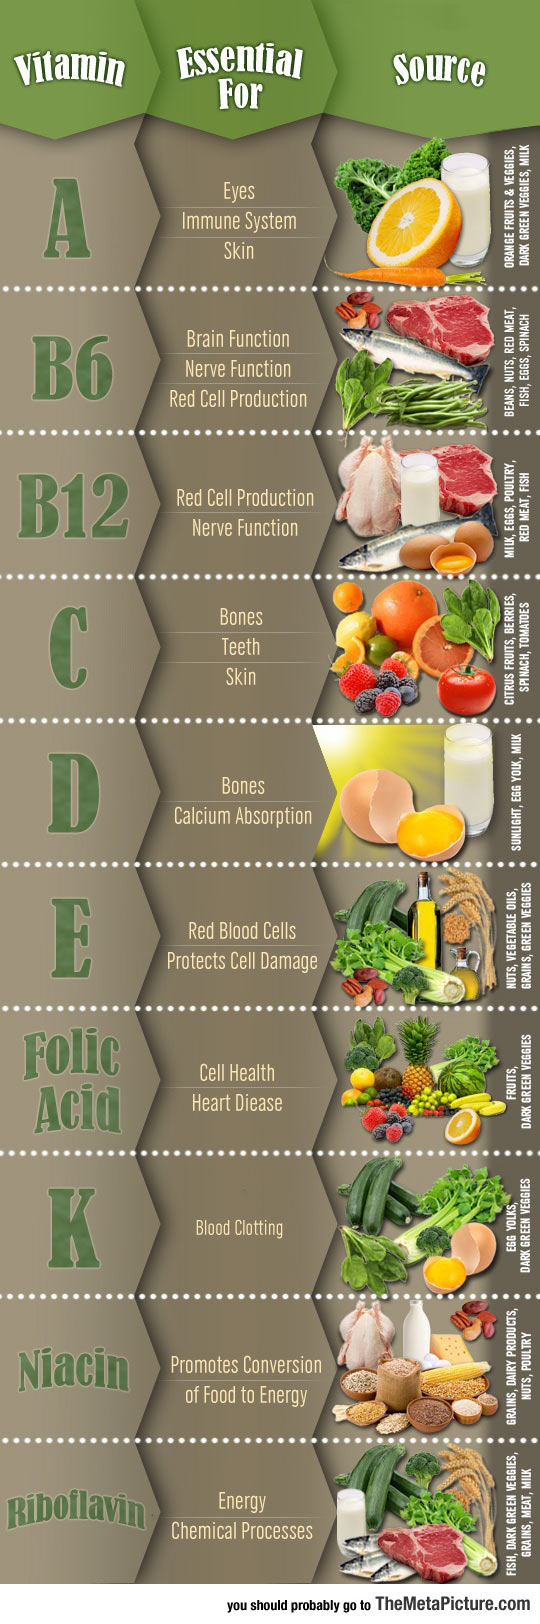 vitamin-fruits-body-health-chart